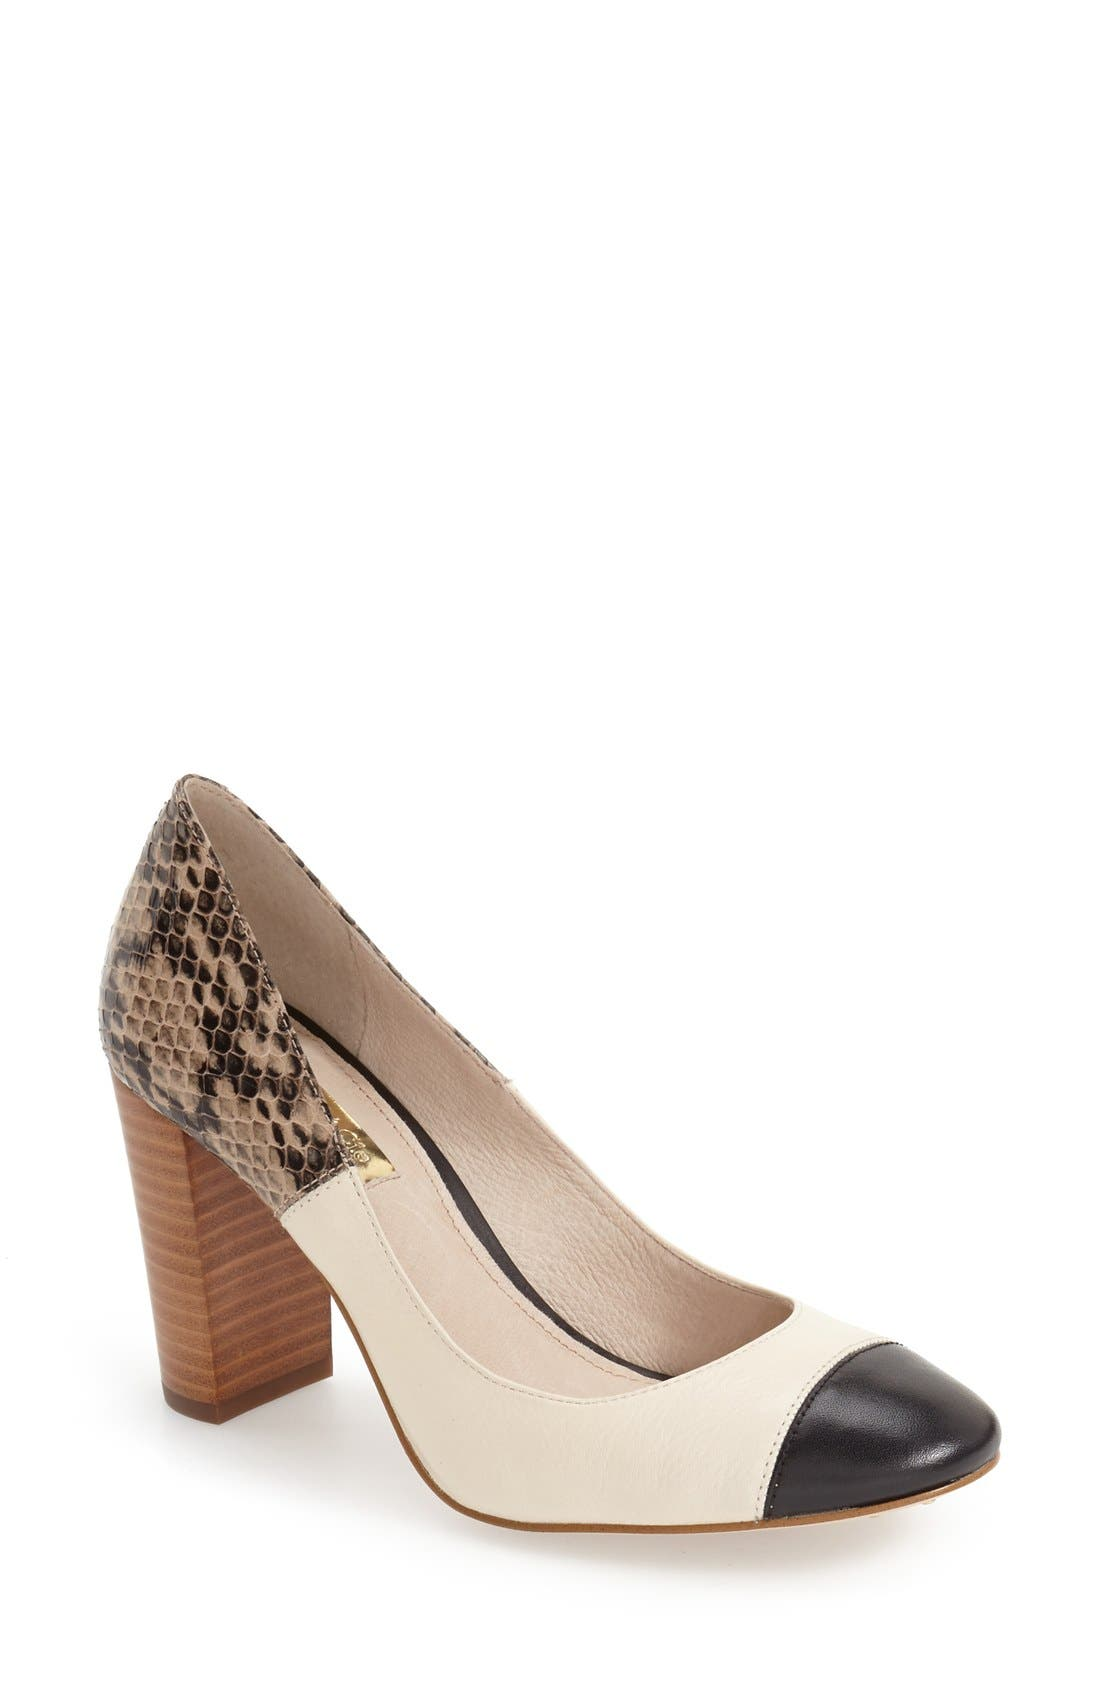 'Jakleen' Cap Toe Pump, Main, color, 002